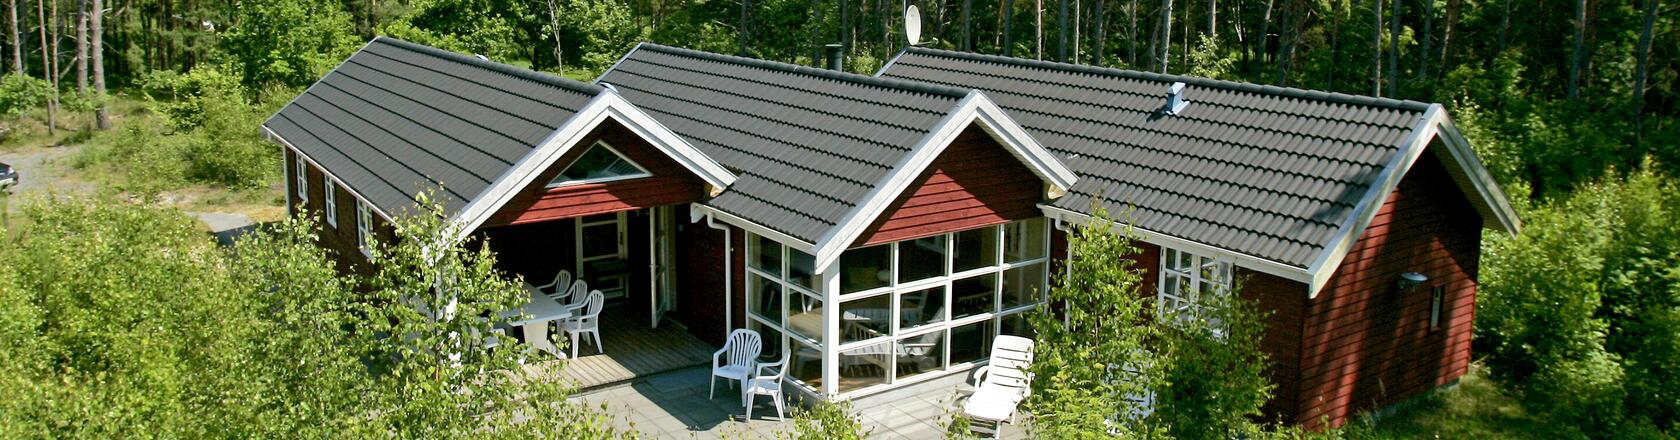 Book a holiday home on Bornholm - Large selection of holiday homes